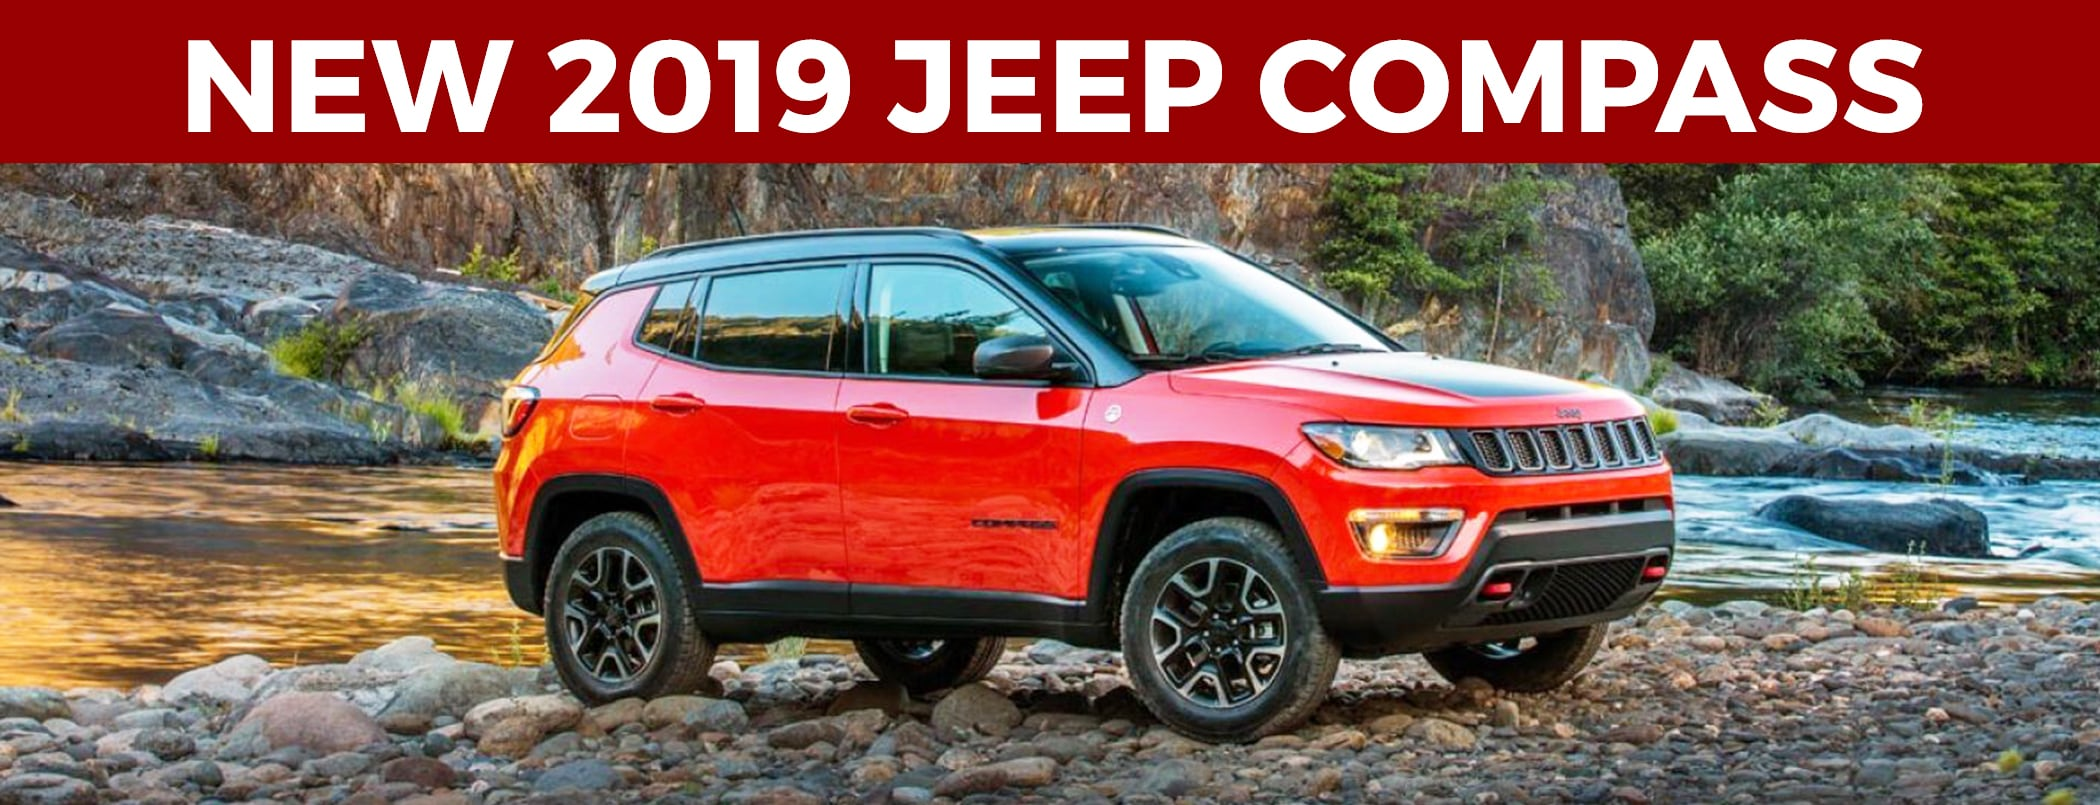 2019 Jeep Compass Review Sandy